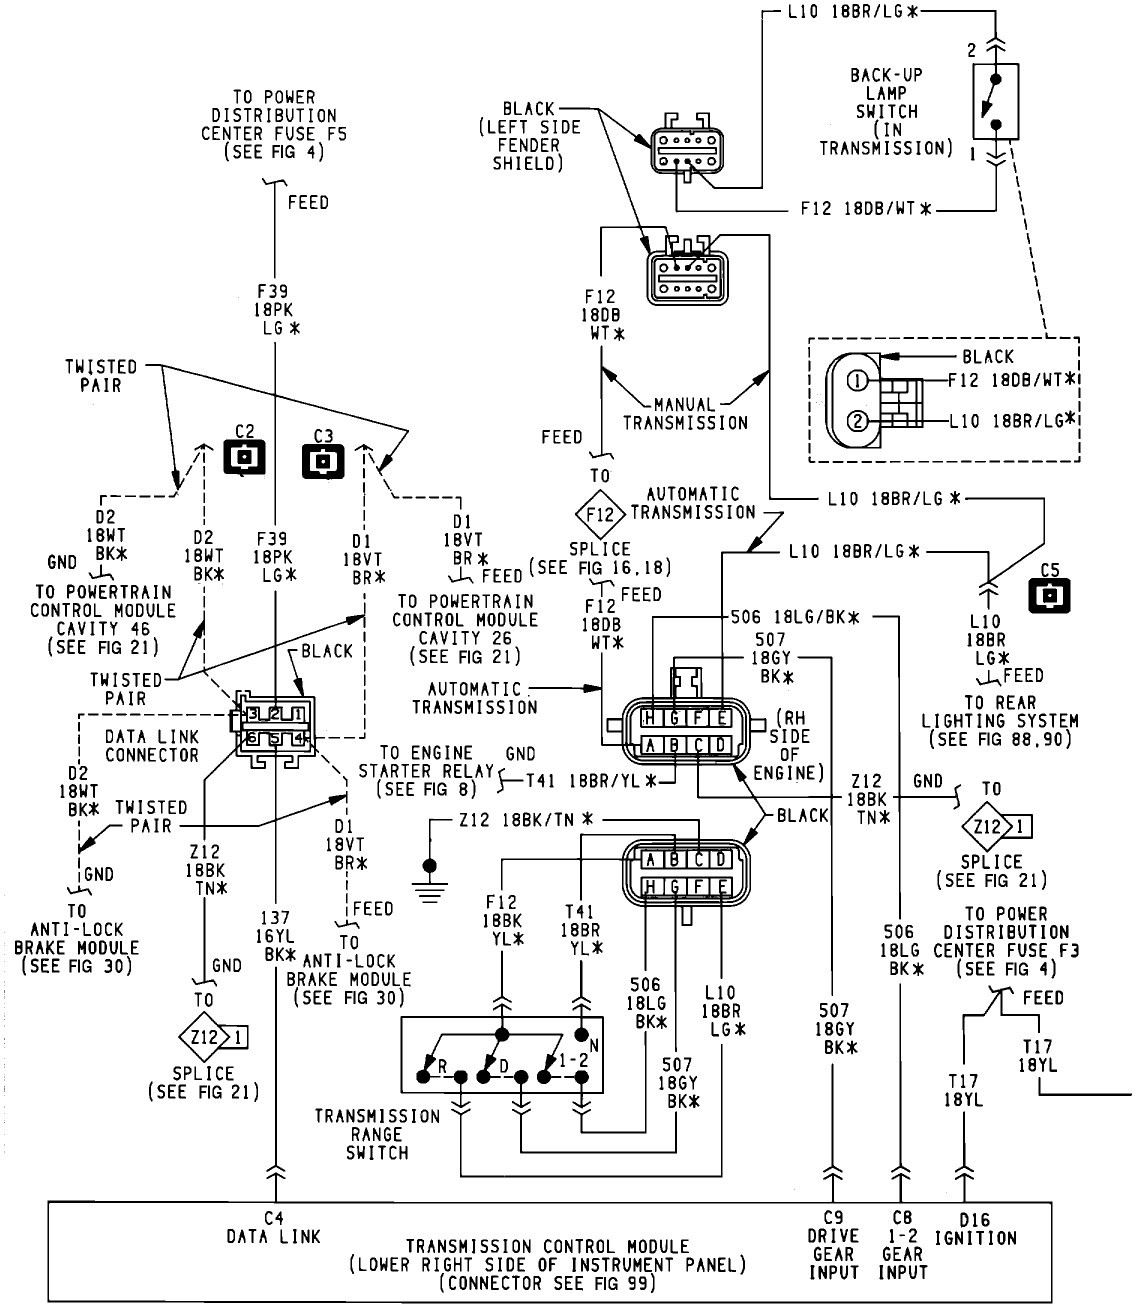 Jeep Grand Cherokee Engine Diagram Wiring Diagram Operations 99 Jeep Cherokee Speaker Wiring Diagram 99 Jeep Cherokee Electrical Schematics